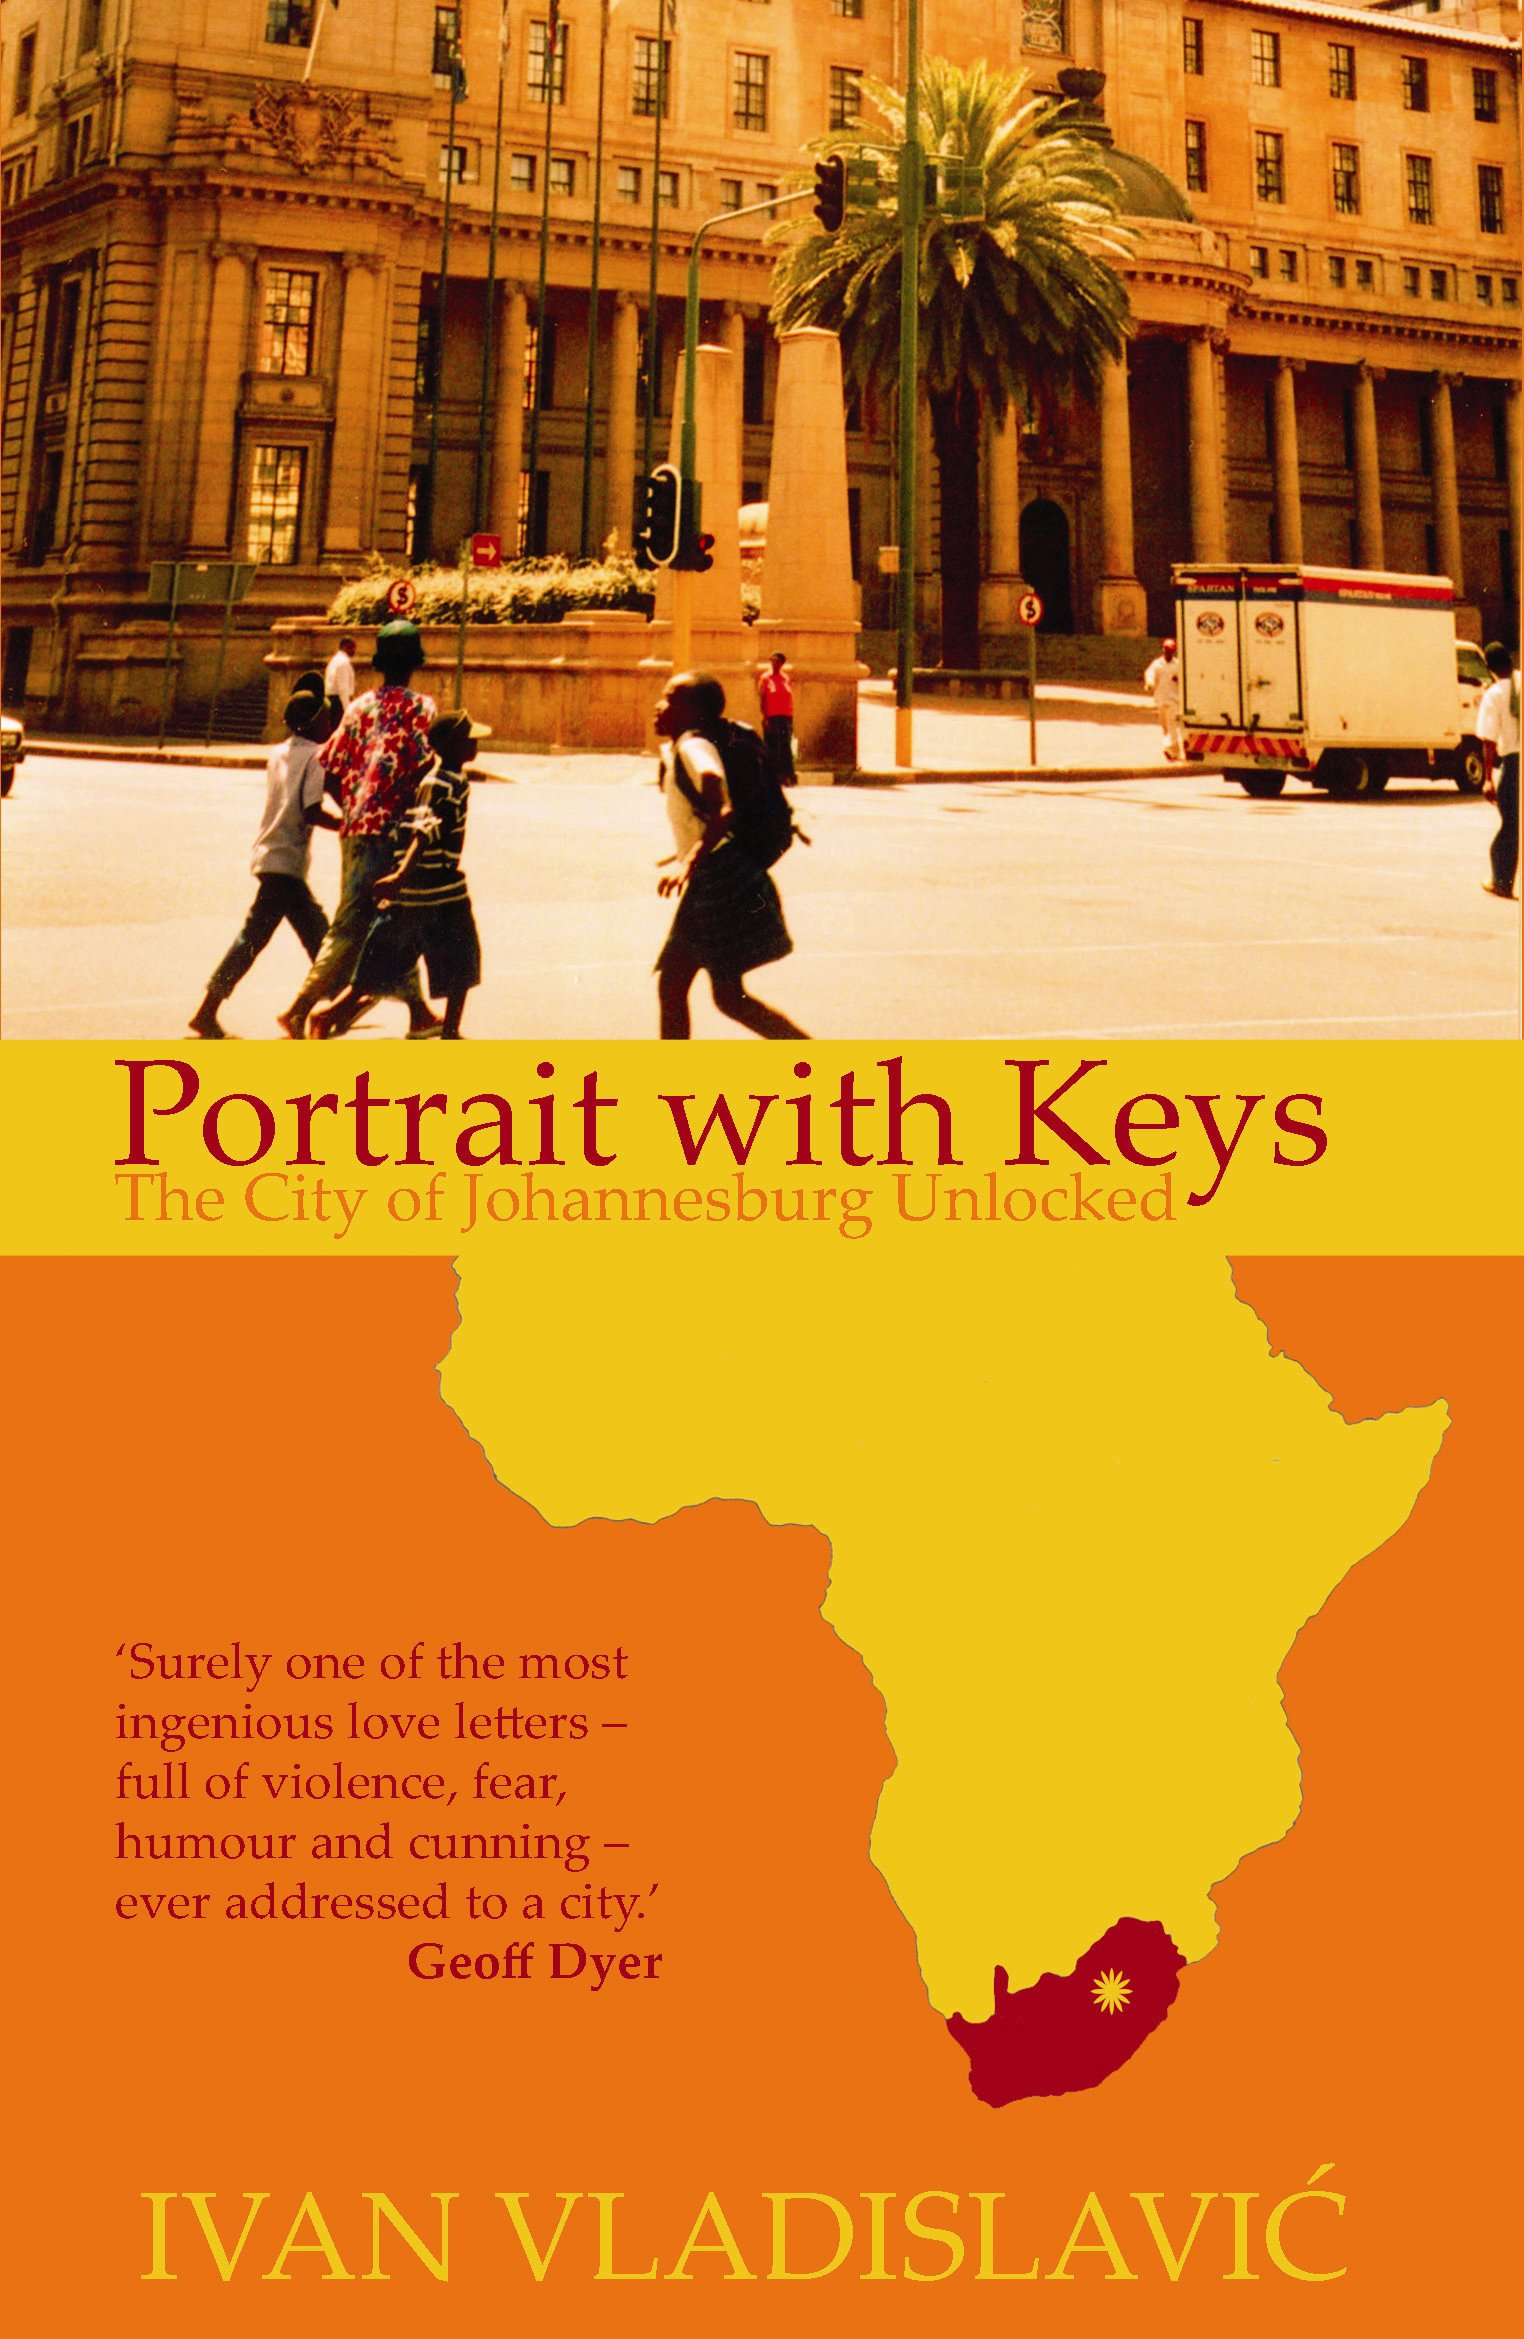 Portrait with Keys: The City of Johannesburg Unlocked